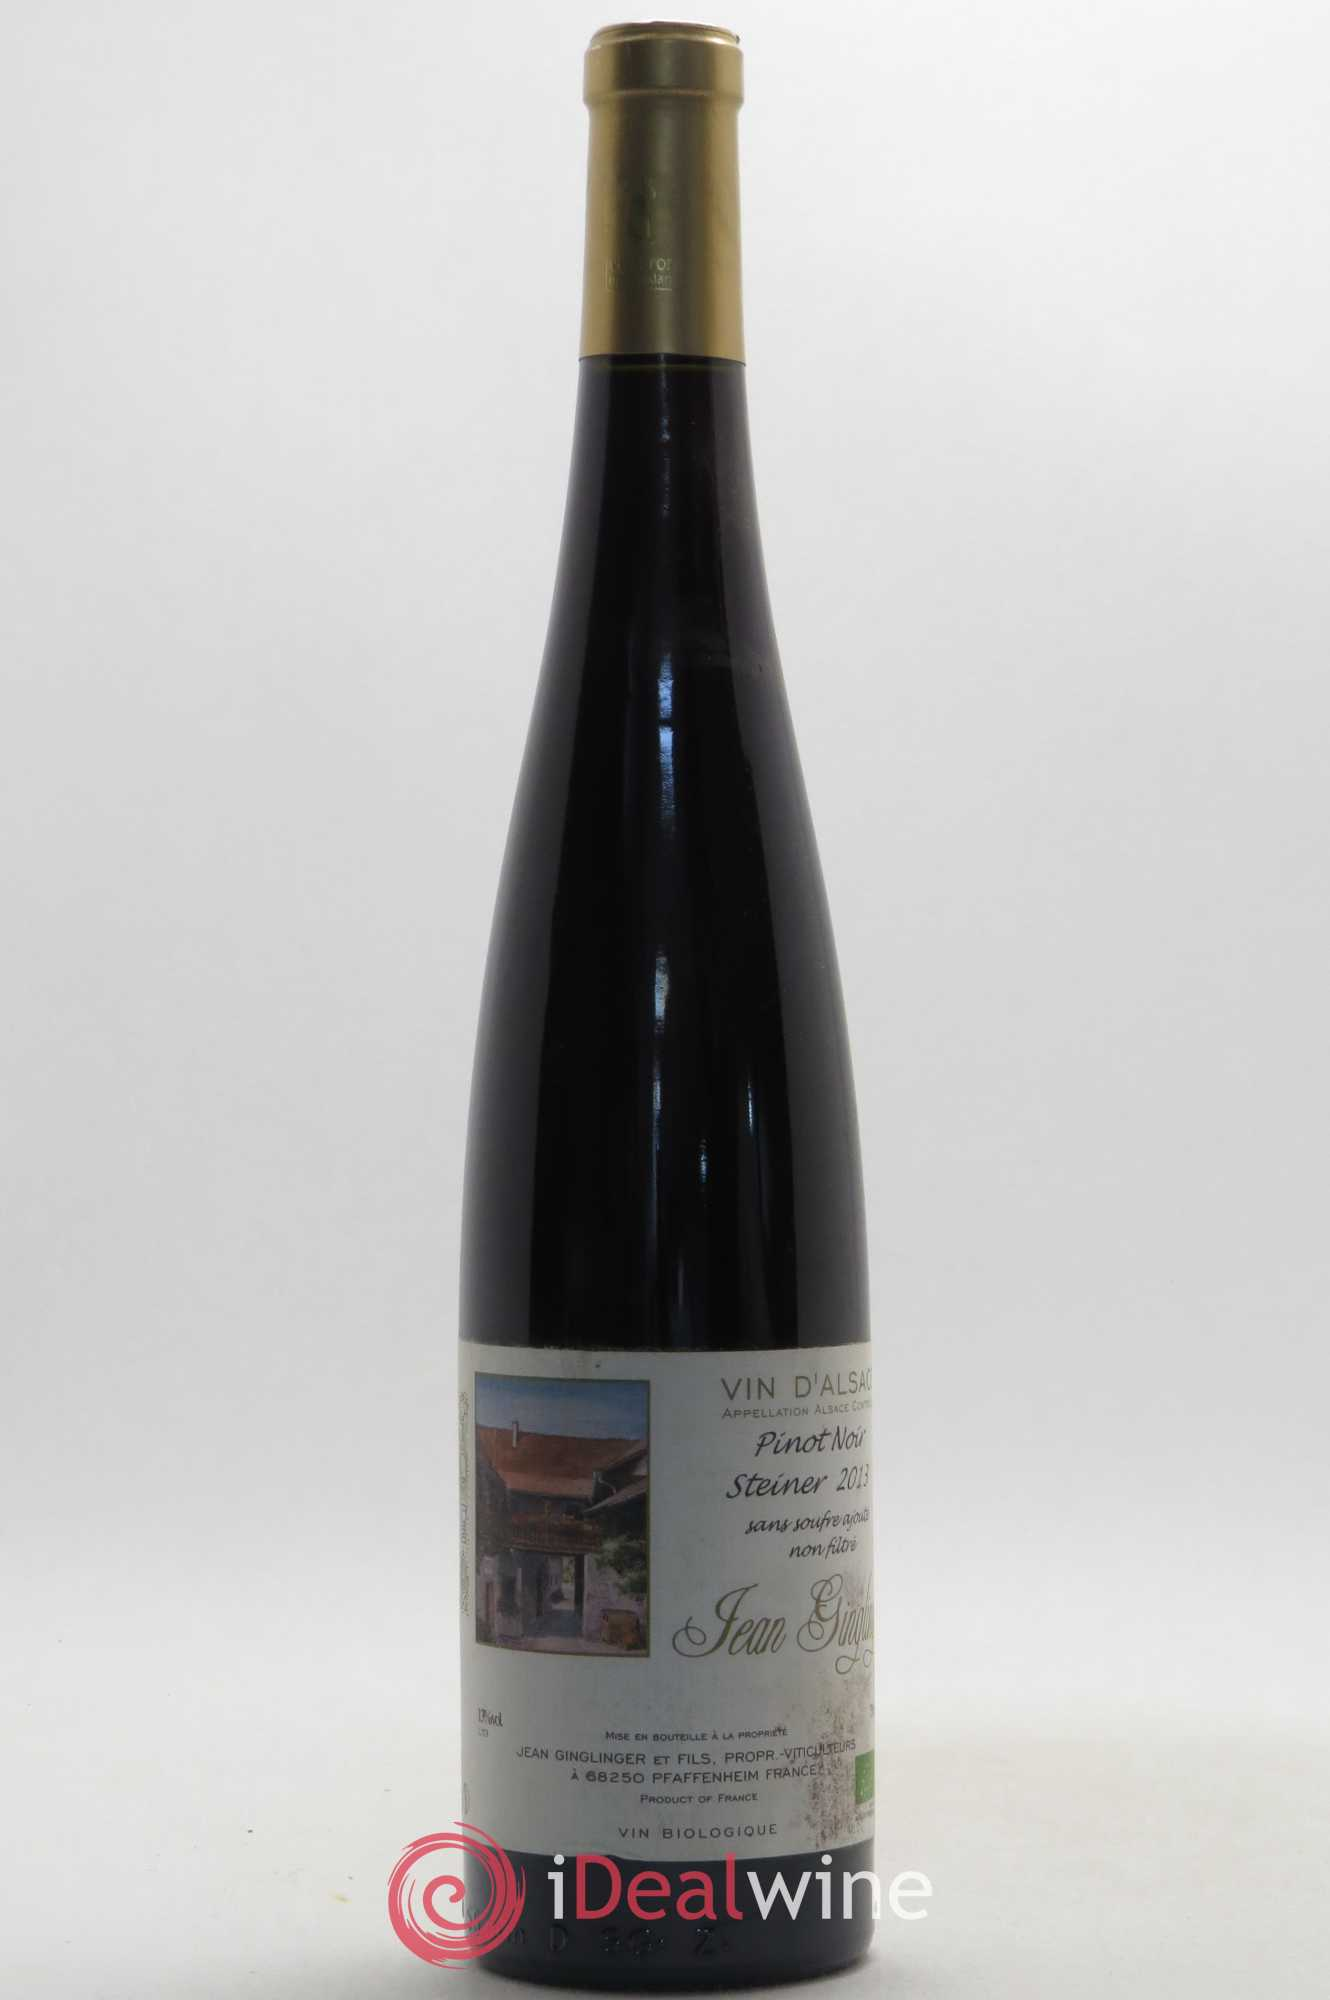 Pinot noir Jean Ginglinger Sans souffre Steiner 2013 - Lot of 1 Bottle